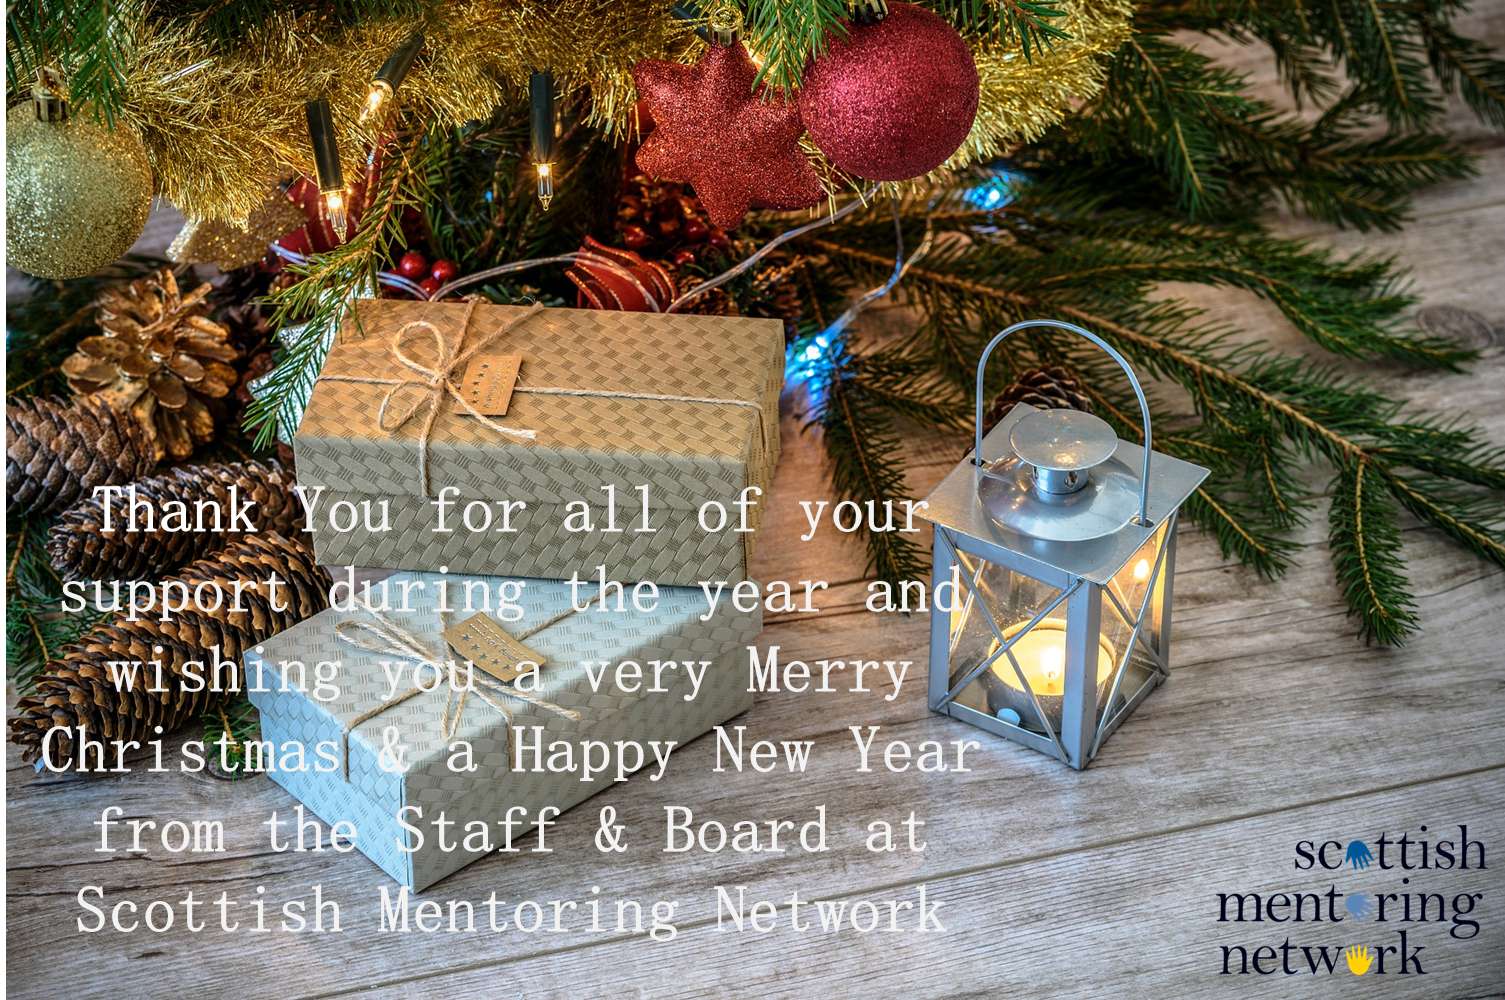 SMN: Season's Greetings from Scottish Mentoring Network